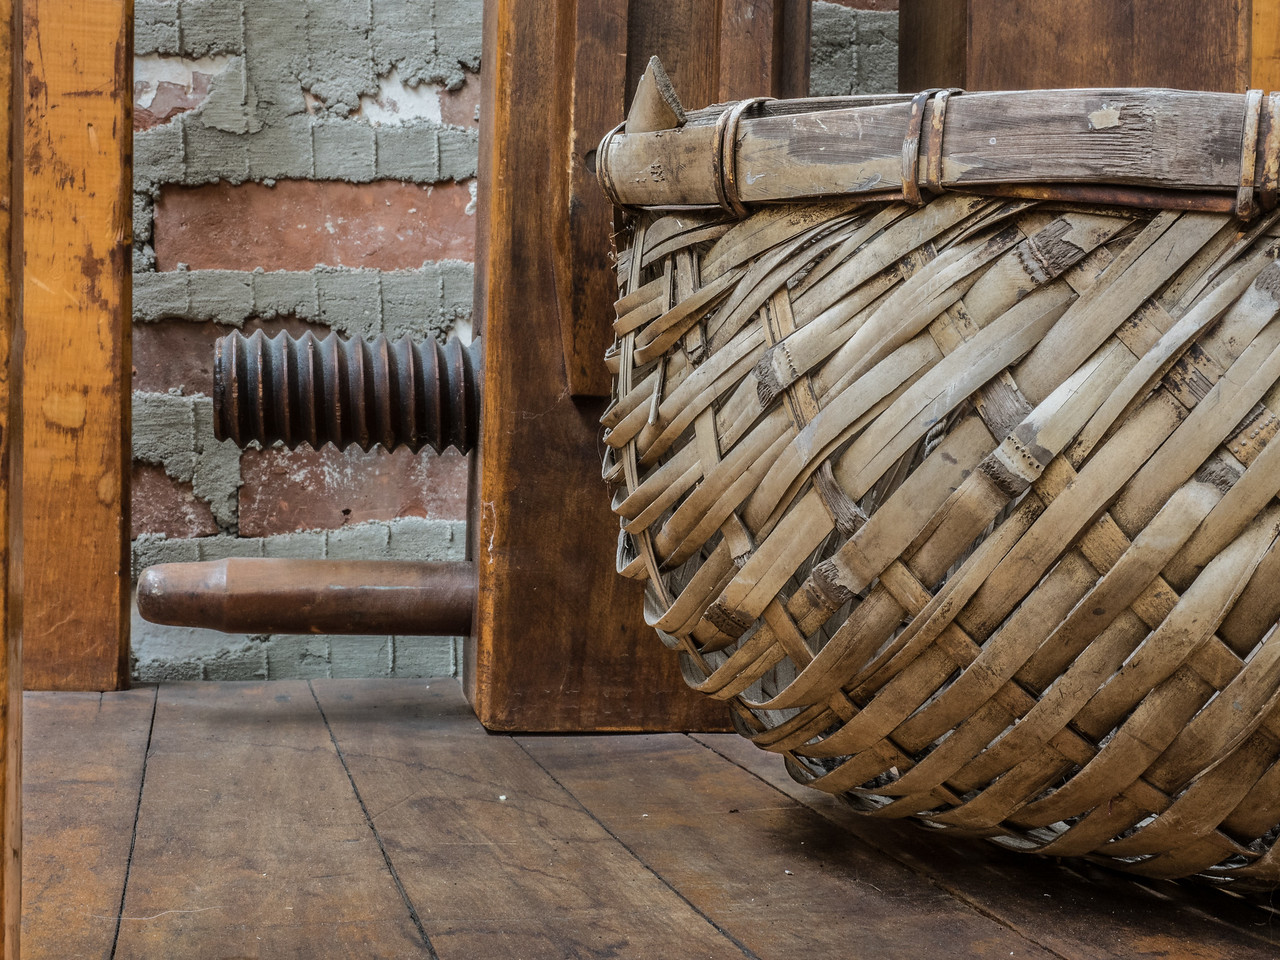 Mosely Mill Basket